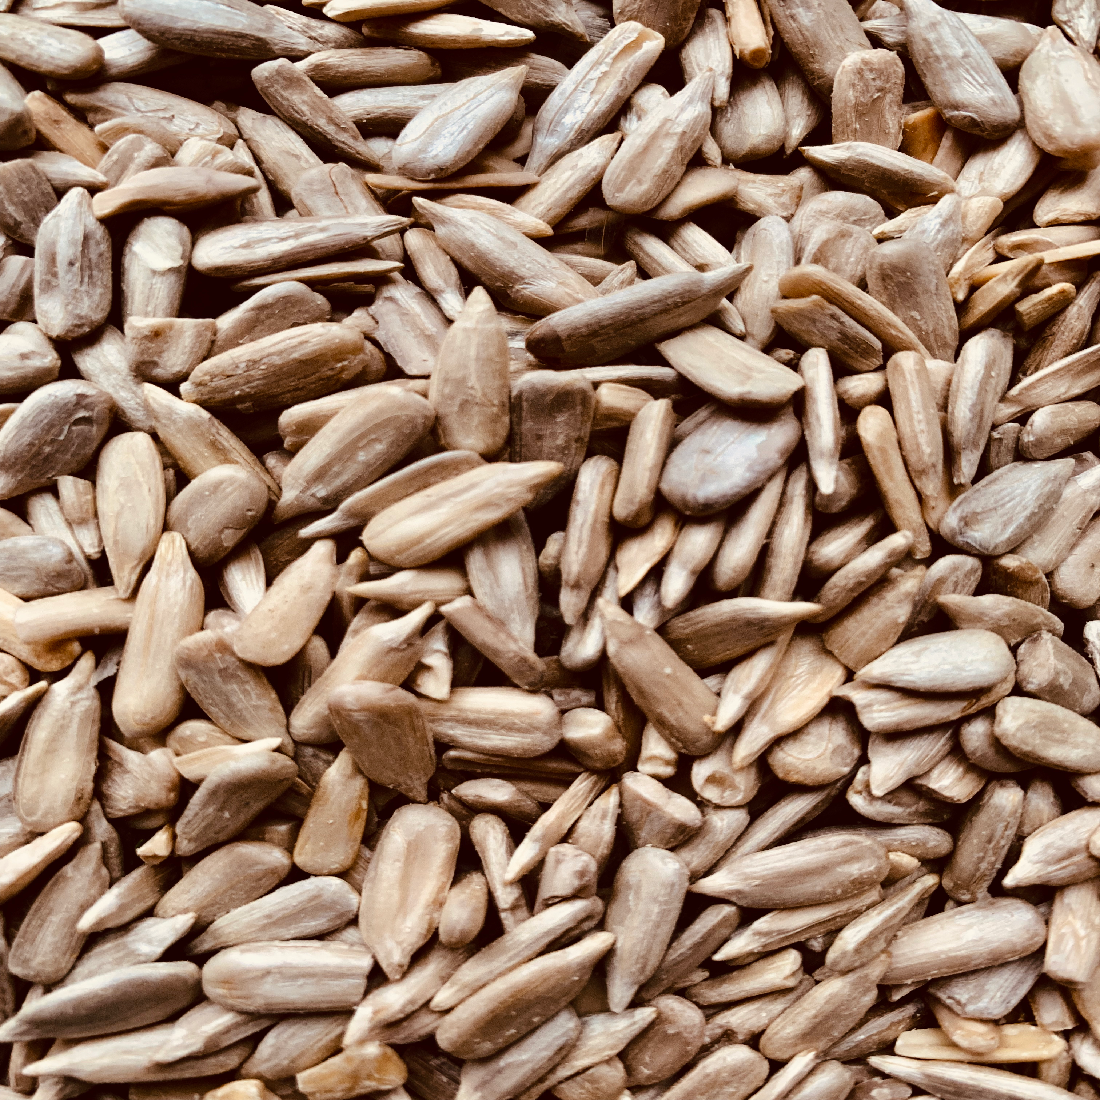 SEEDS - Sunflower seeds don't look like much, but they pack loads of goodness into their tiny bodies; protein, healthy omega 3 fats, zinc and iron